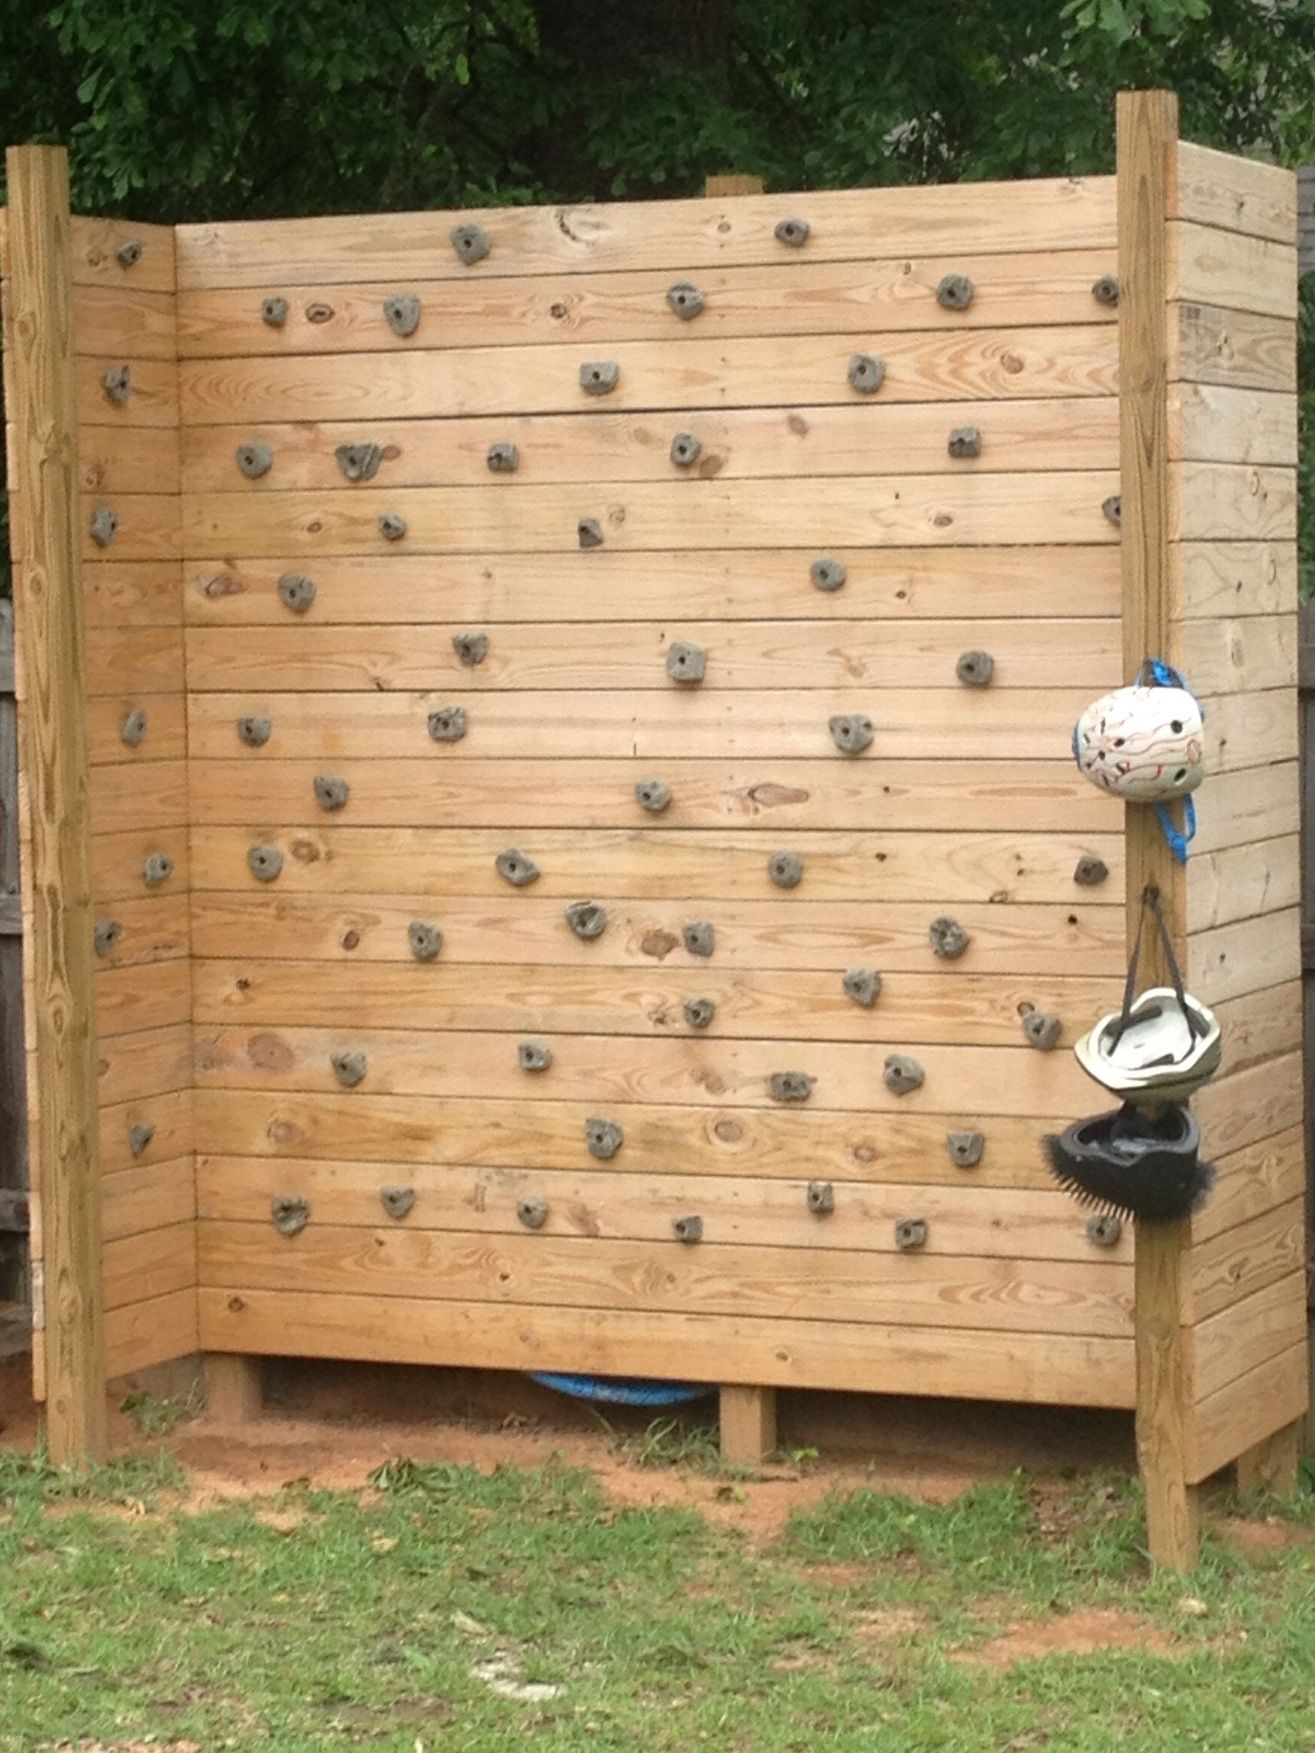 Climbing Wall Made With Pressure Treated Deck Boards 12 Foot 4x4 Posts And Climbing Holds Ordered From Ama Rock Climbing Wall Backyard For Kids Climbing Wall